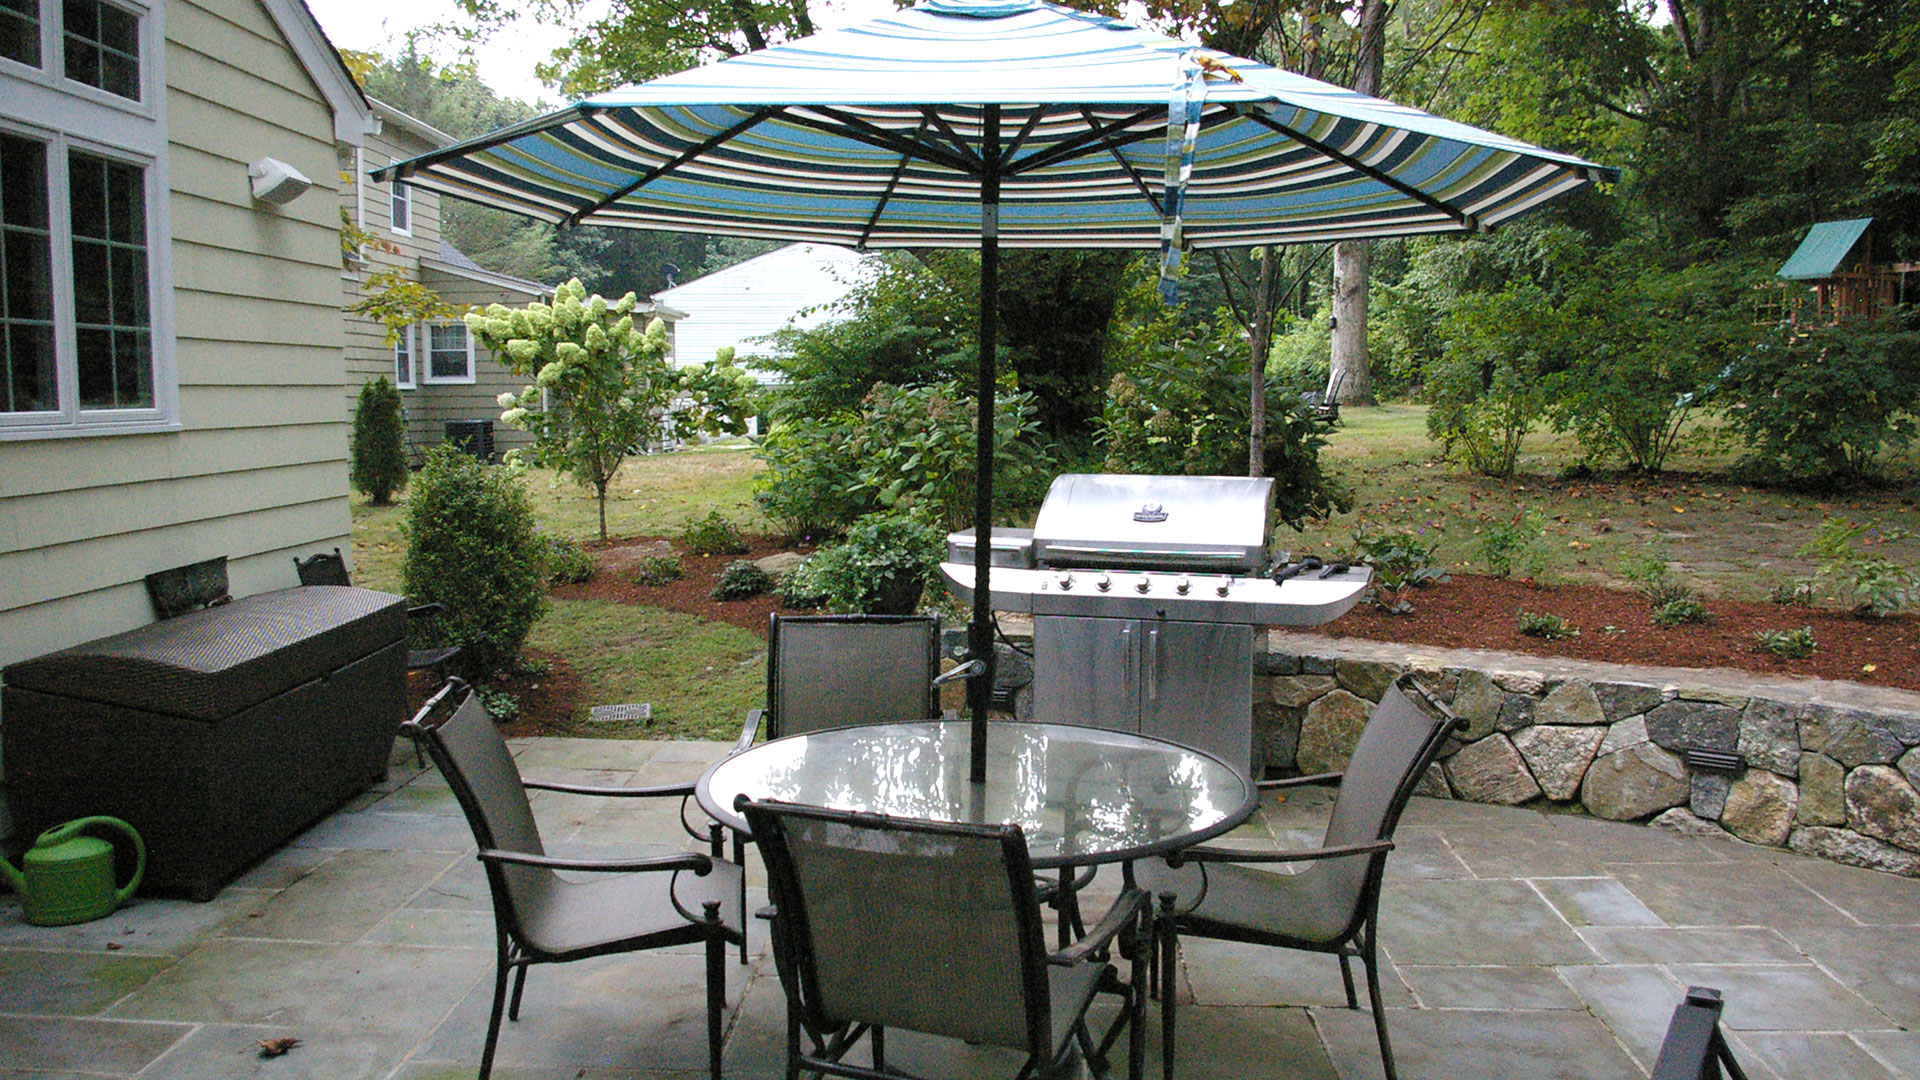 trumbull-ct-backyard-planting-from-patio-after